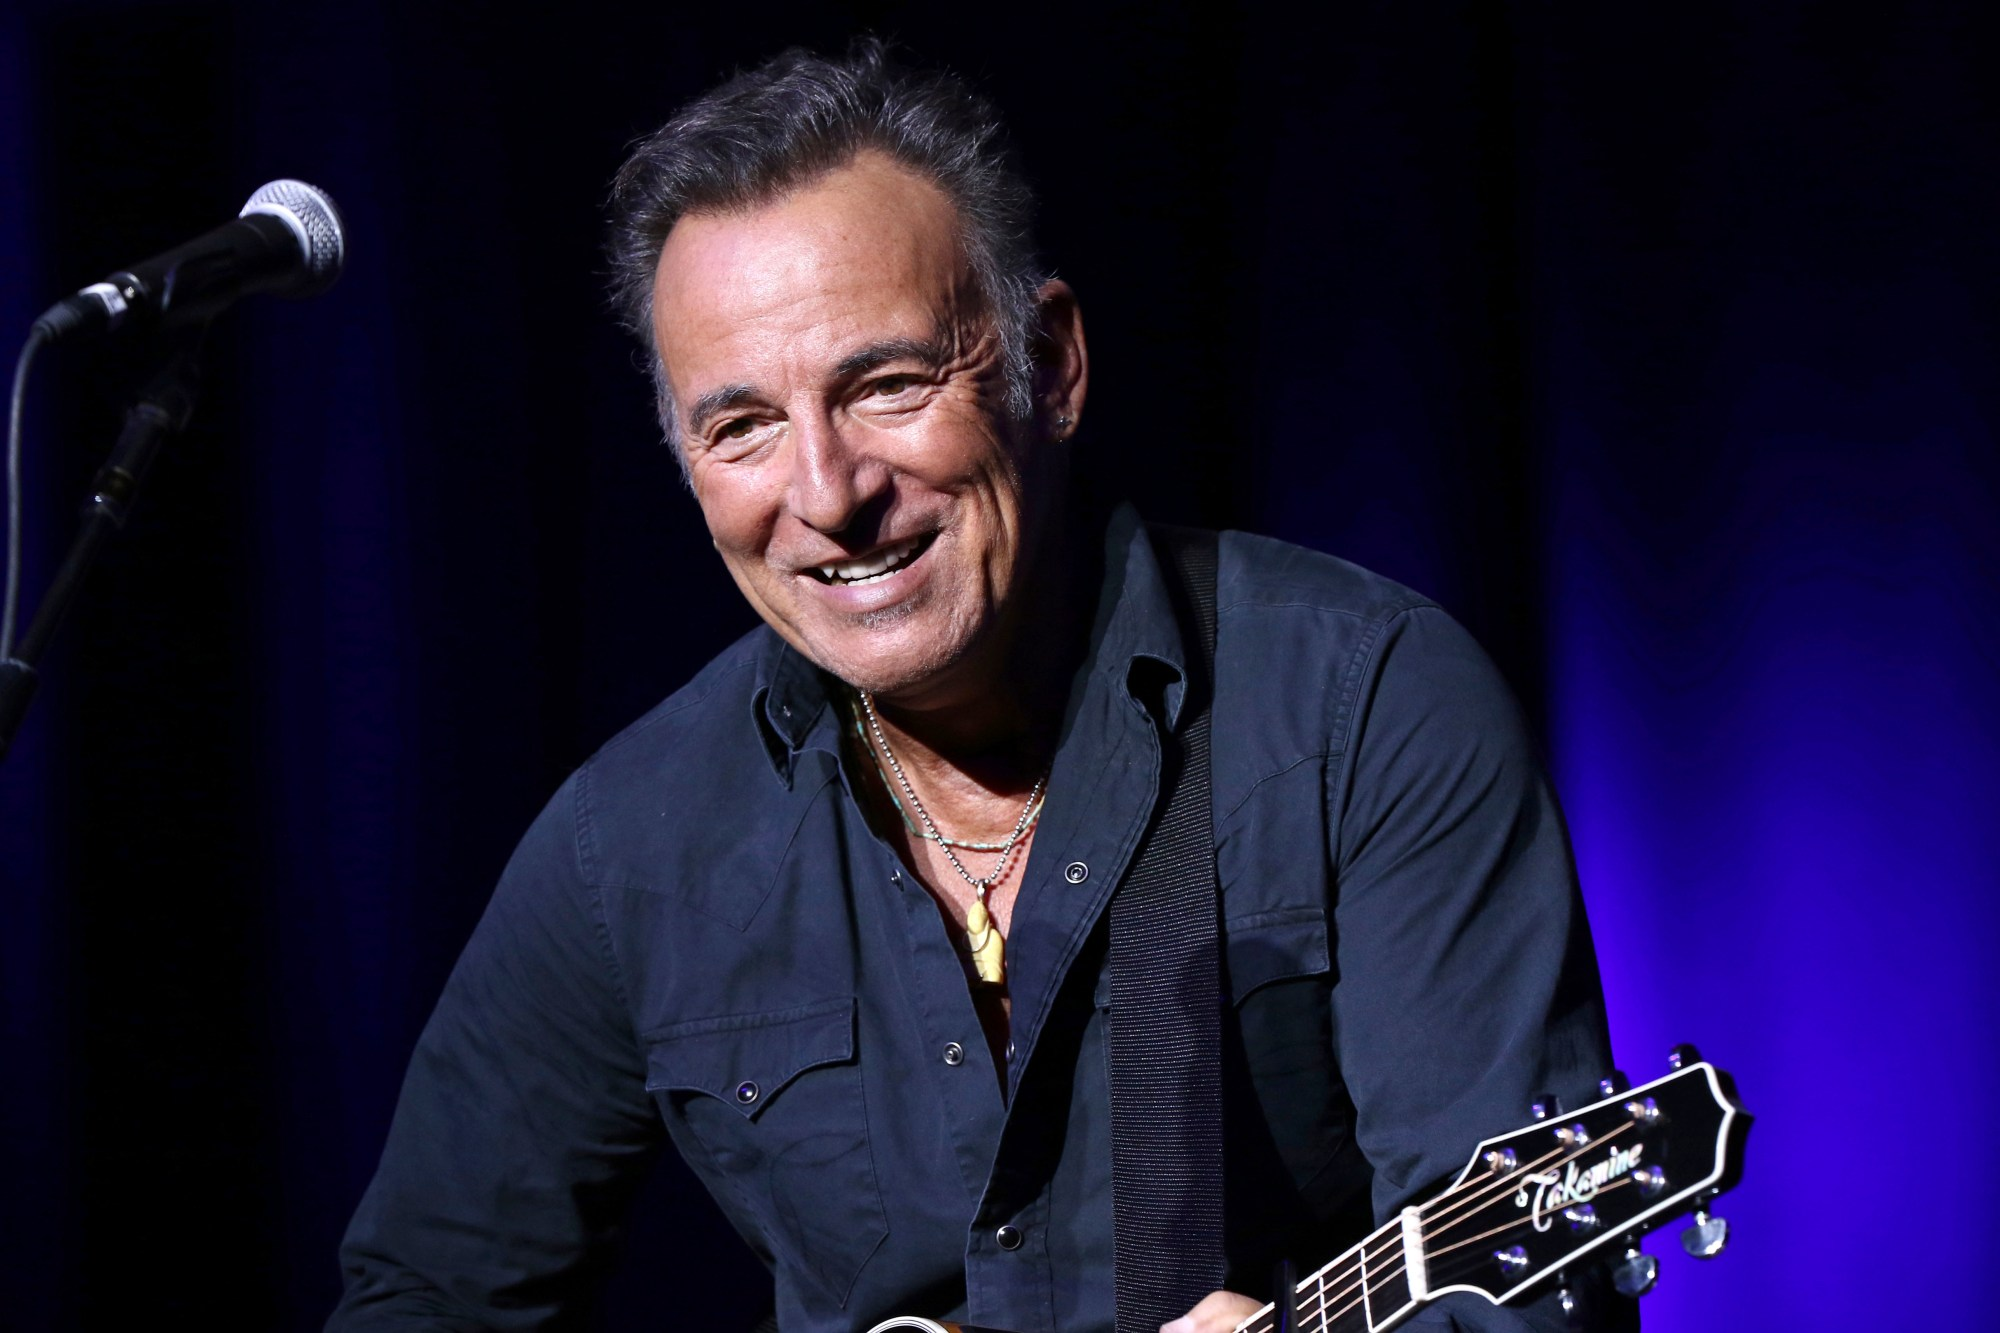 People_Bruce_Springsteen_41922-159532.jpg25567008